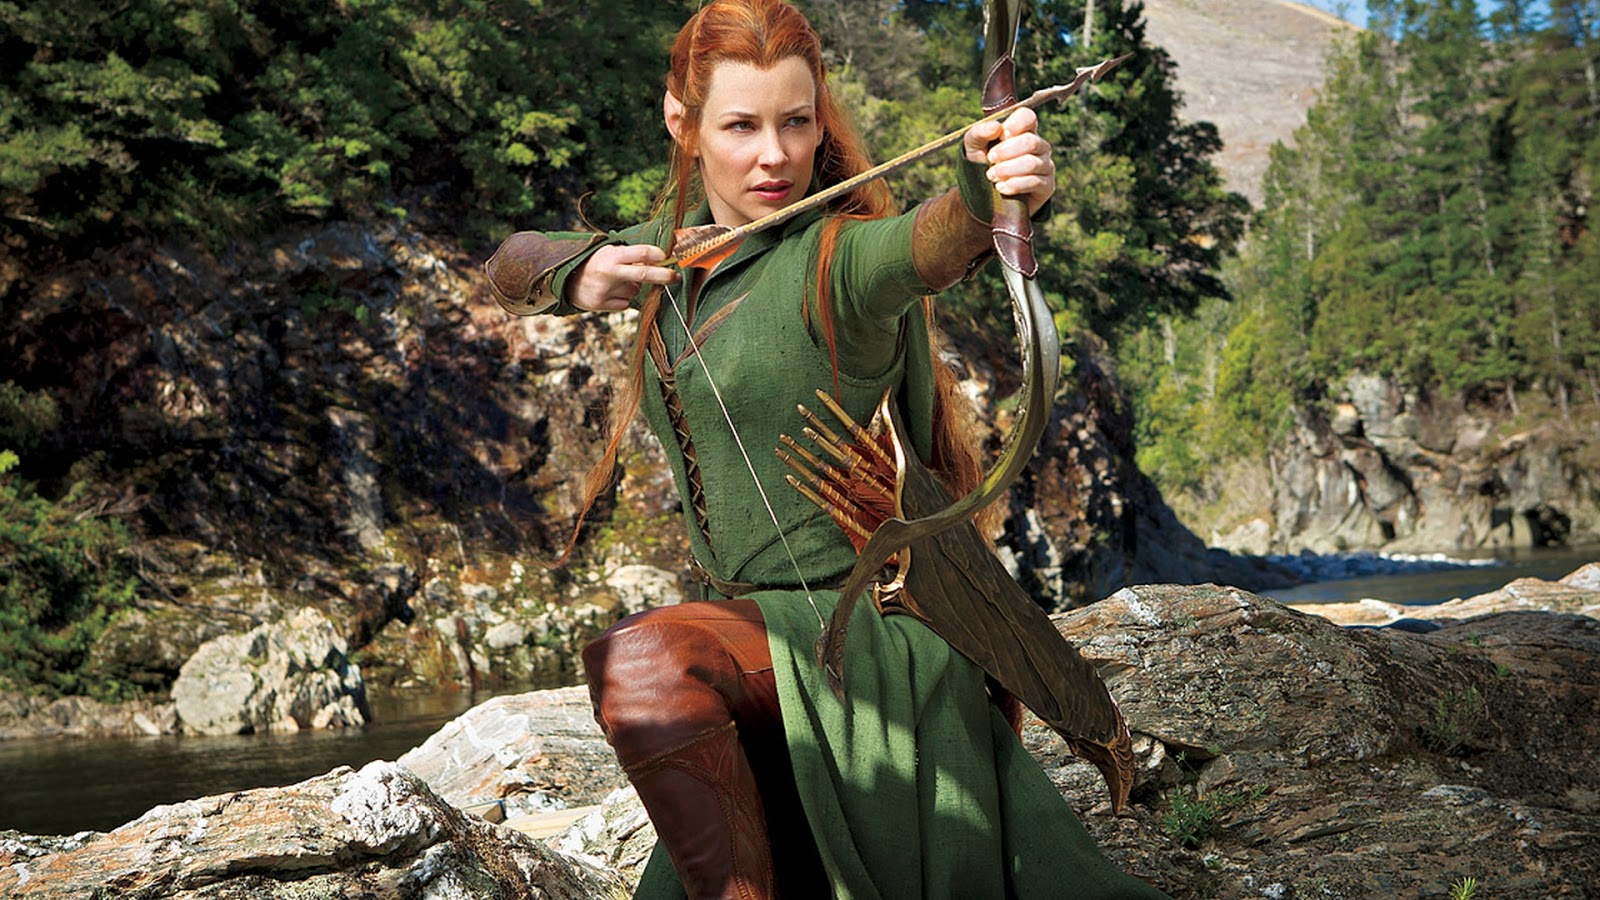 evangeline lilly as tauriel in hobbit wallpapers - Evangeline Lilly as Tauriel in Hobbit Wallpapers HD